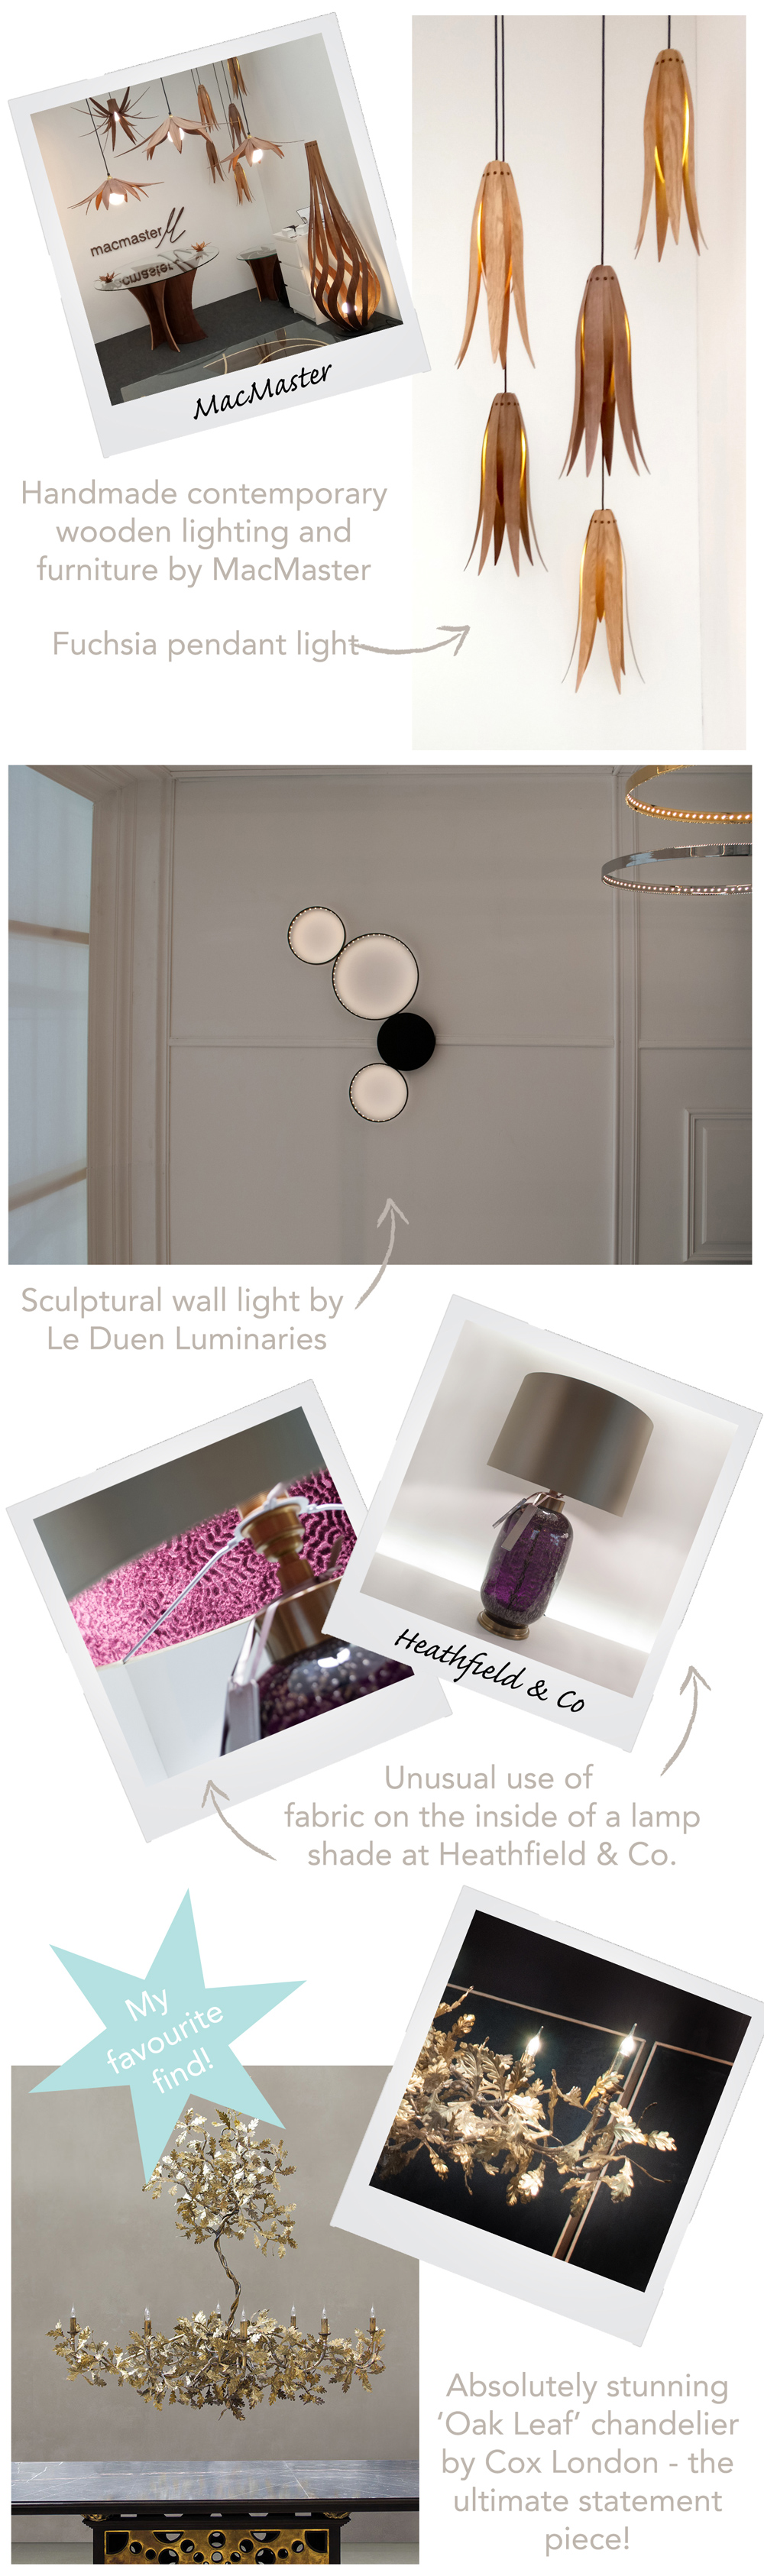 Jenny Blanc Blog - Lightings pic4